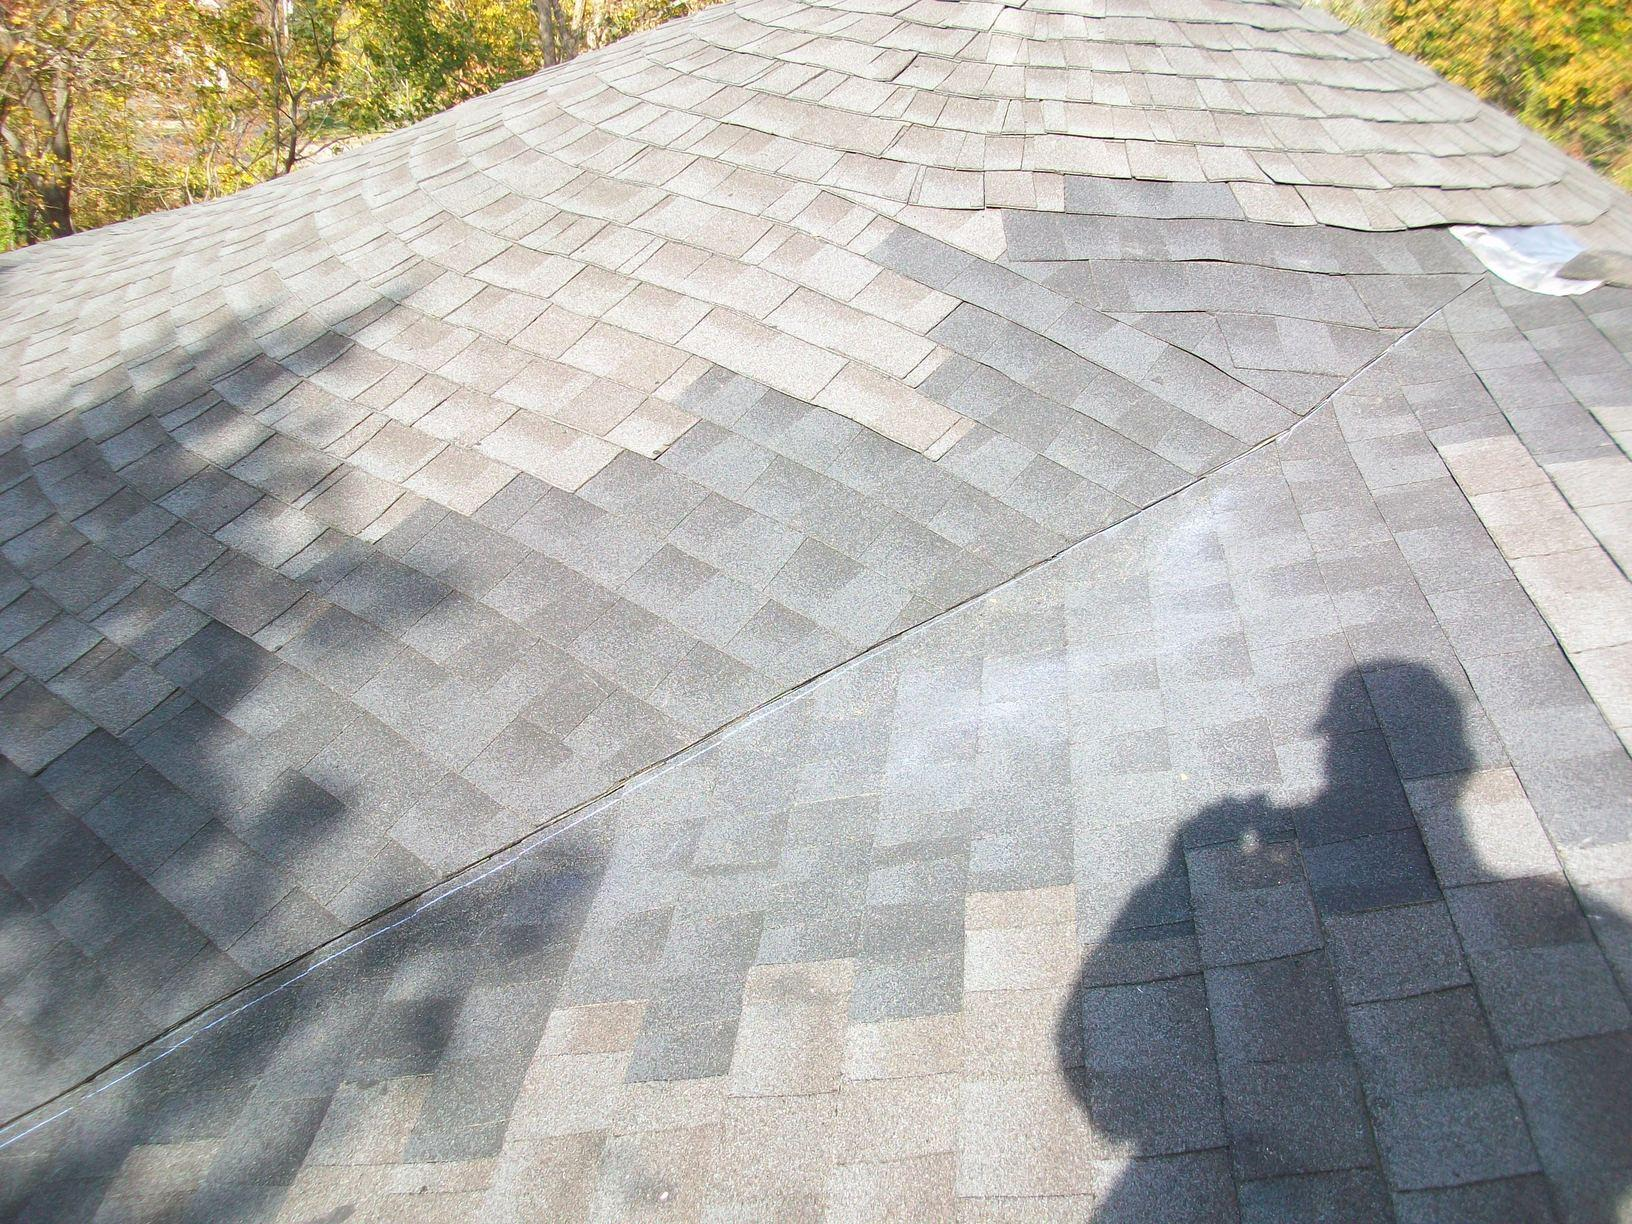 Completed Shingle Roof Repair